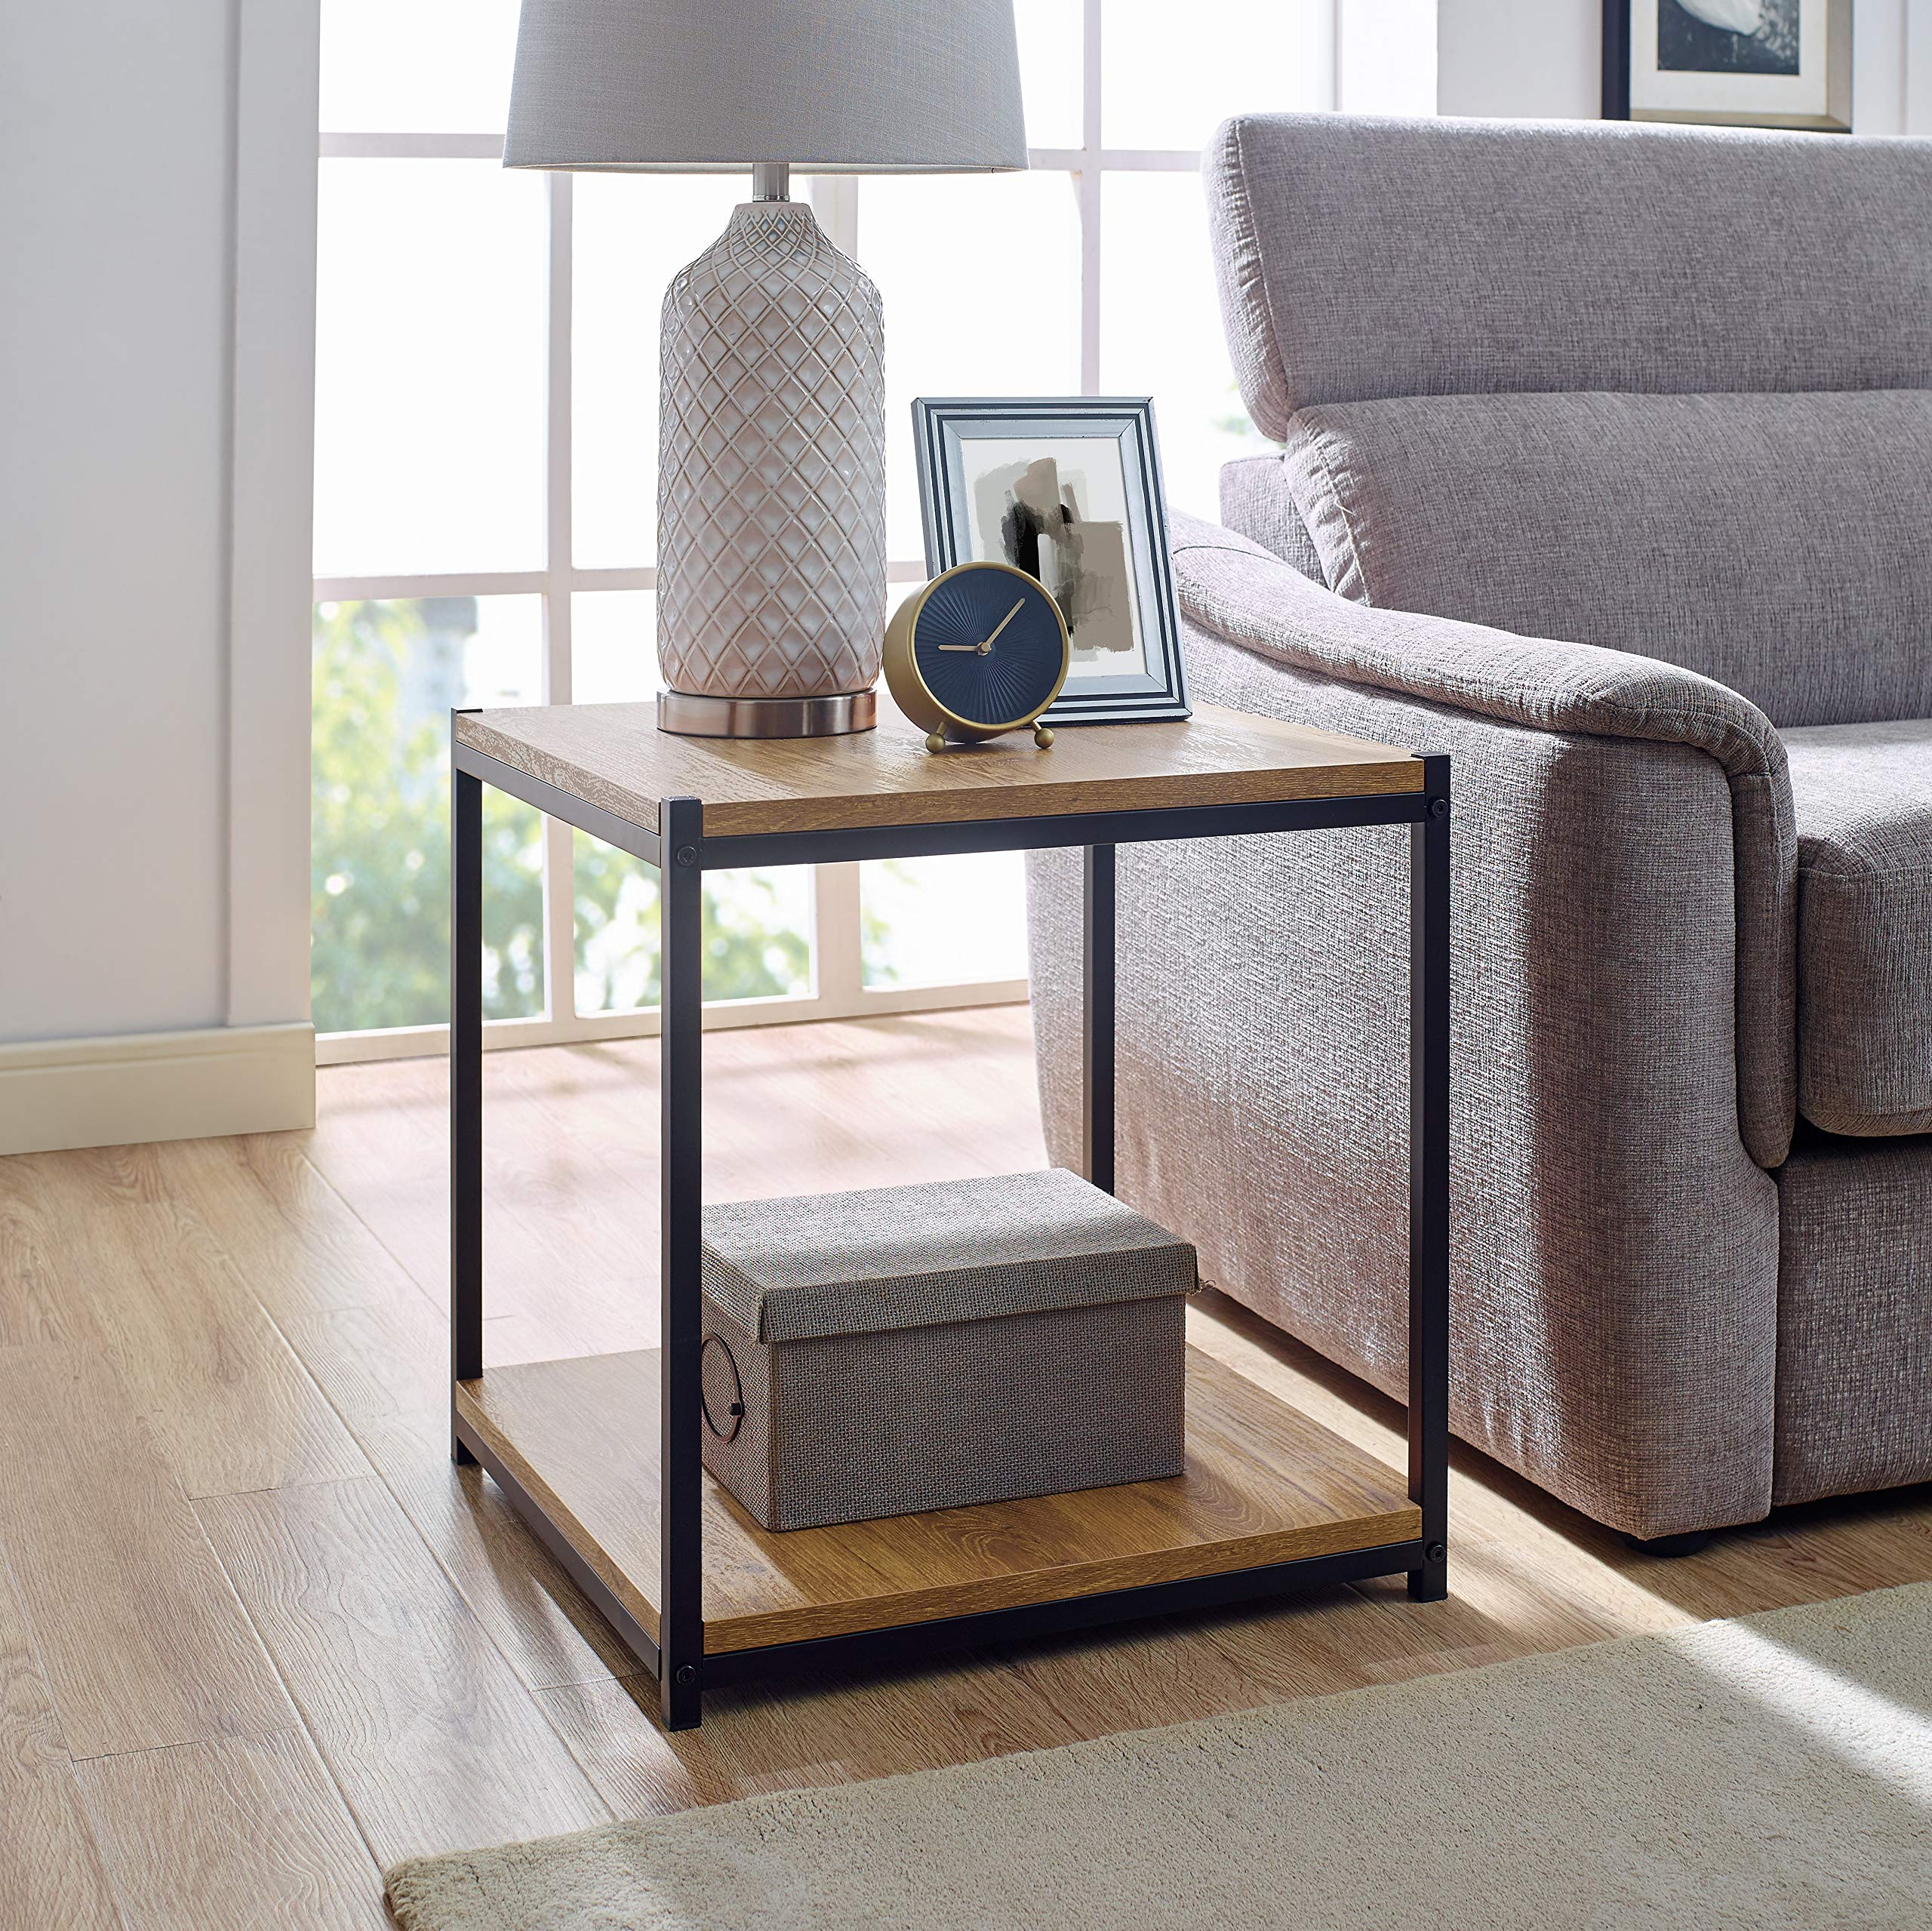 Tall Side End Table by CAFFOZ Furniture Designs |Brooklyn Series | Night Stand | Coffee Table |Storage Shelf | Sturdy | Easy Assembly | Brown Oak Wood Look Accent Furniture with Metal Frame by CAFFOZ Funiture Designs